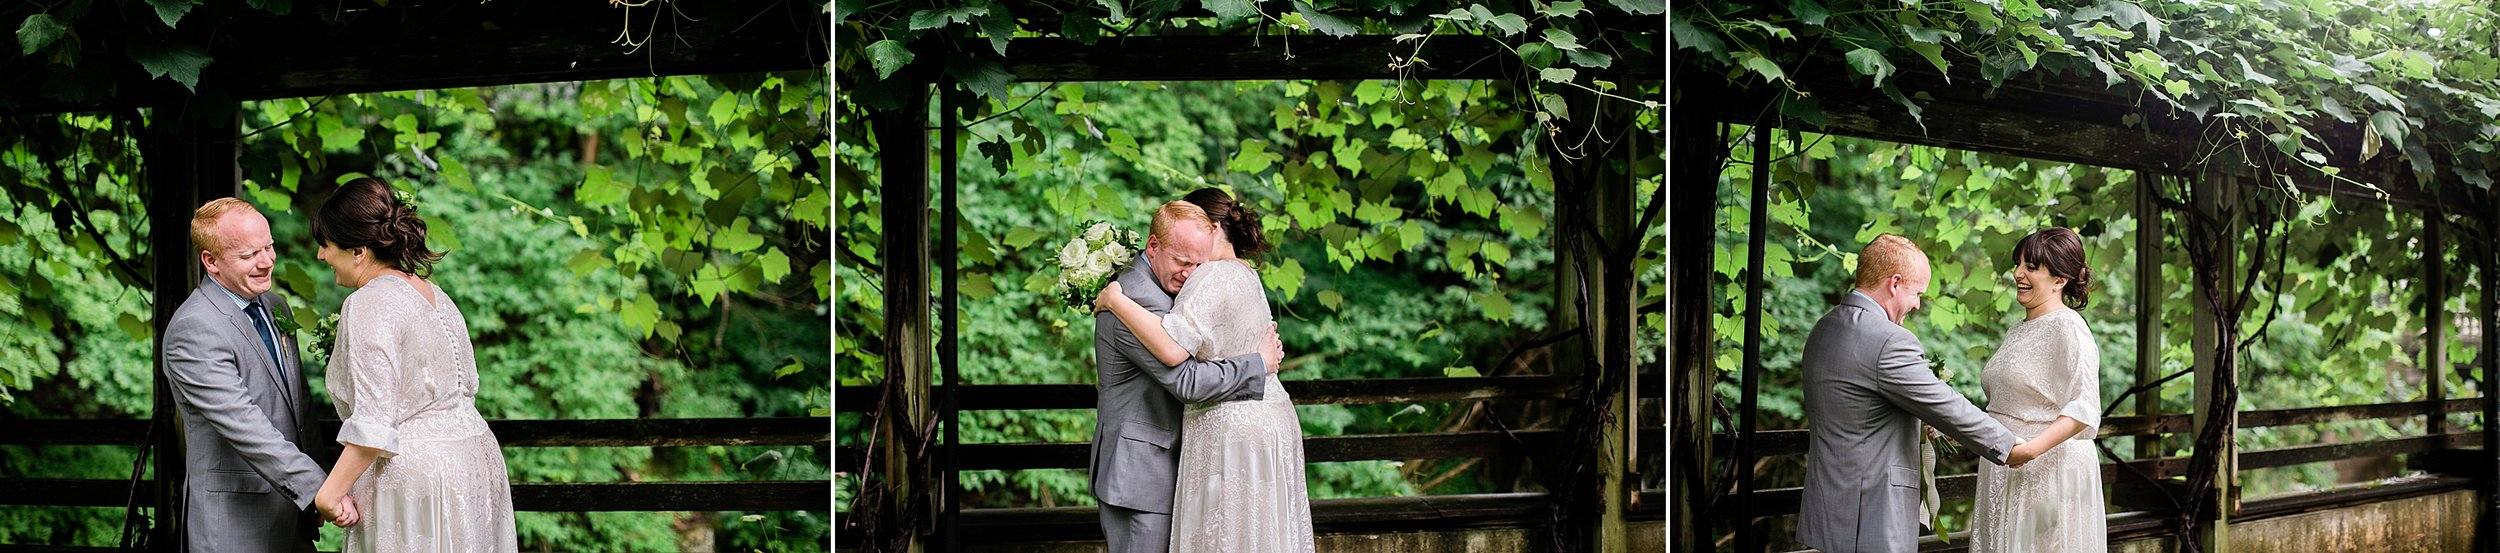 015-los-angeles-wedding-photography-todd-danforth-vermont.jpg